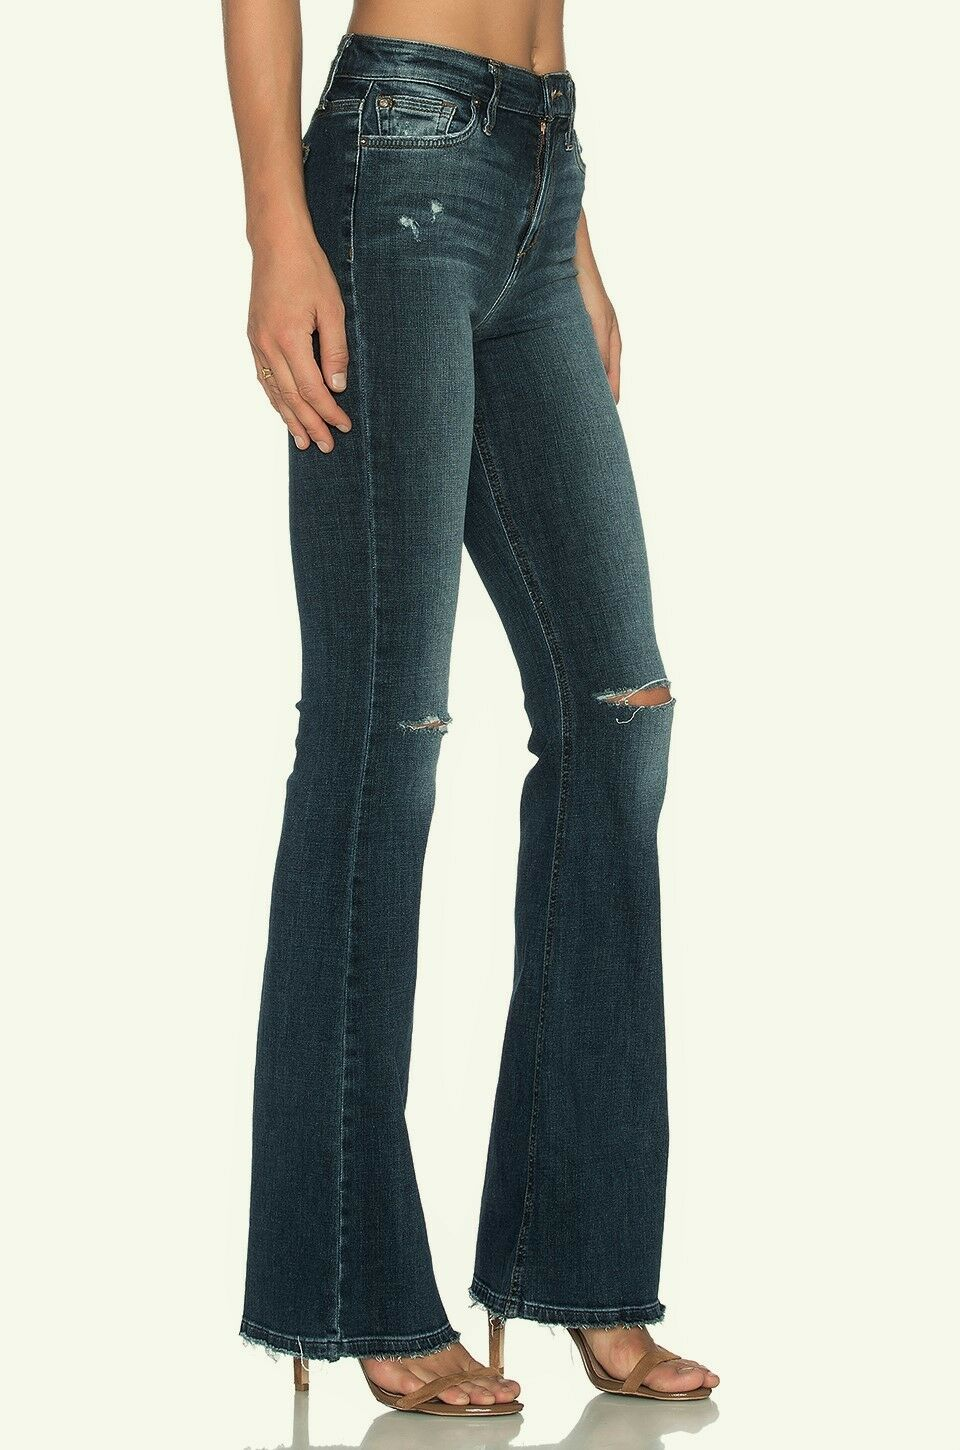 189 NWT JOE'S JEANS 31 Collector's Edition Charlie Flare Bell Destroyed Denim